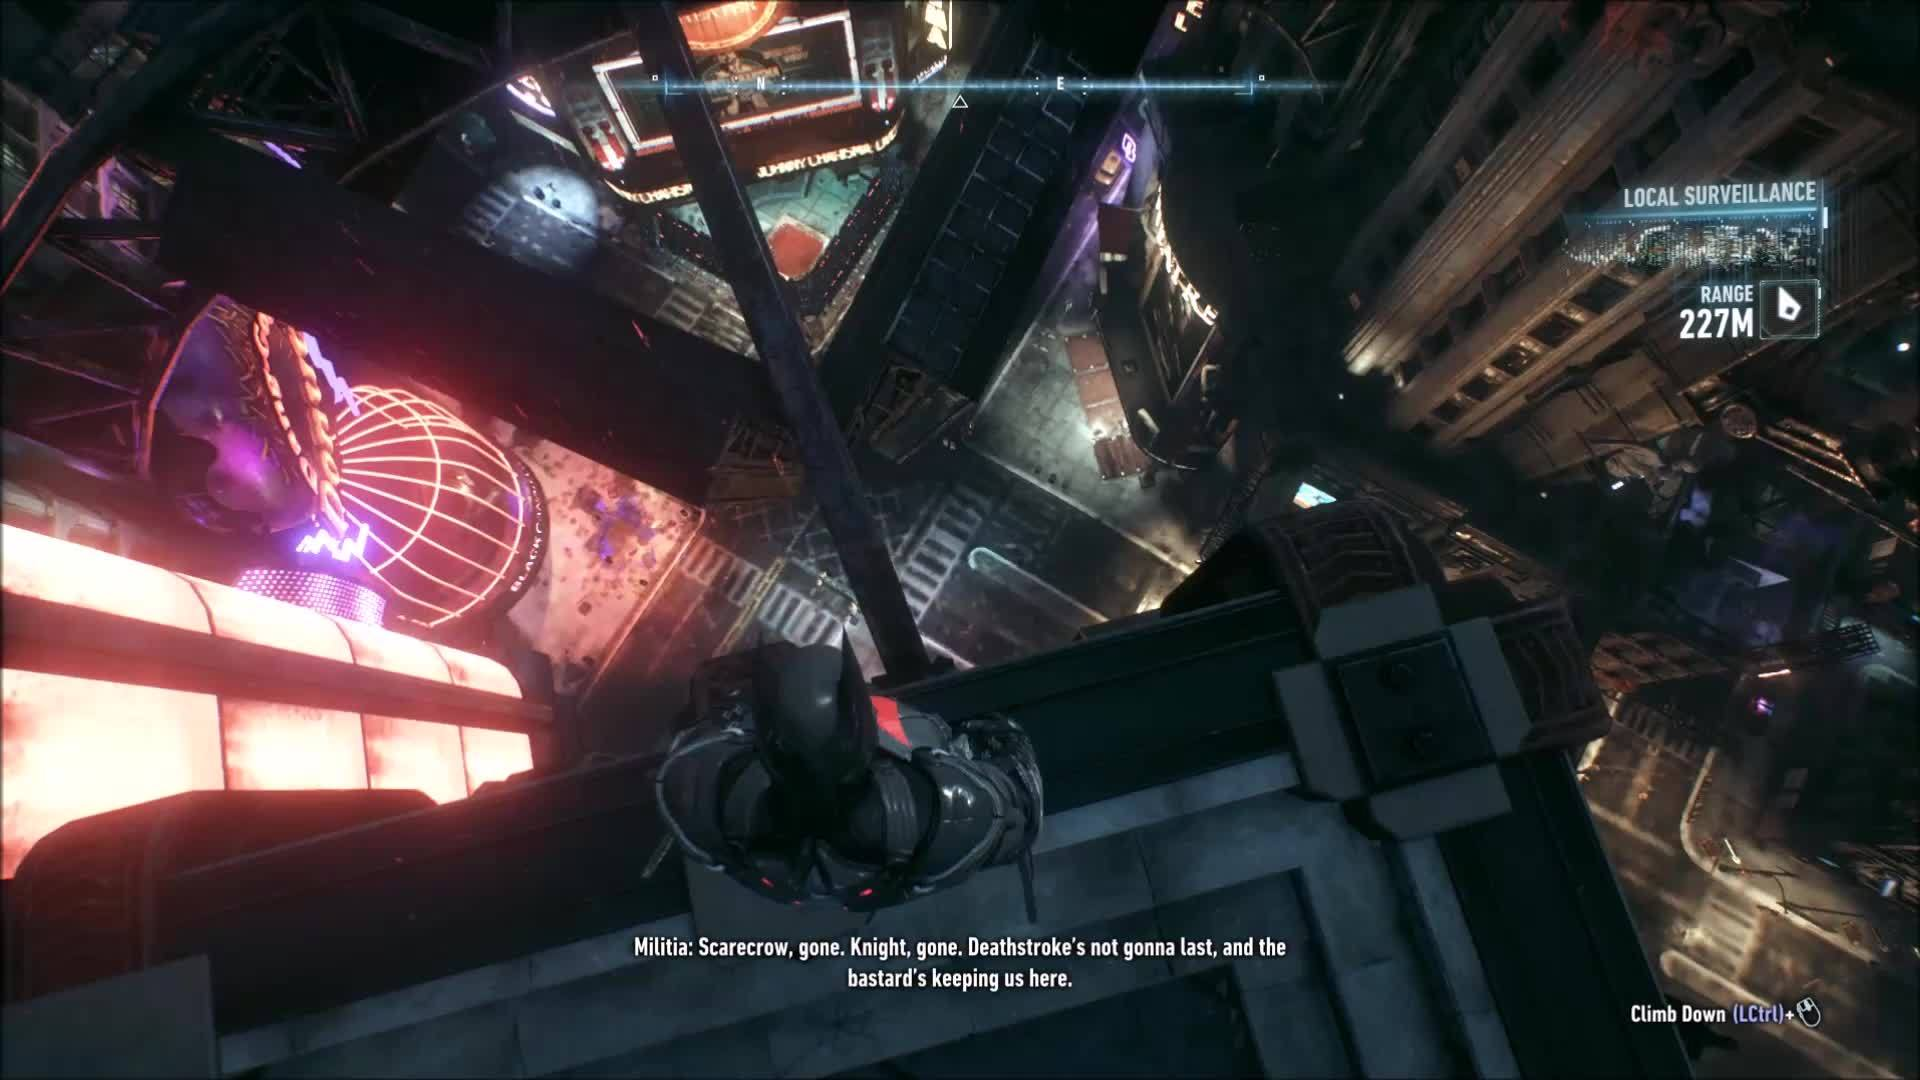 batmanarkham, oddlysatisfying,  GIFs